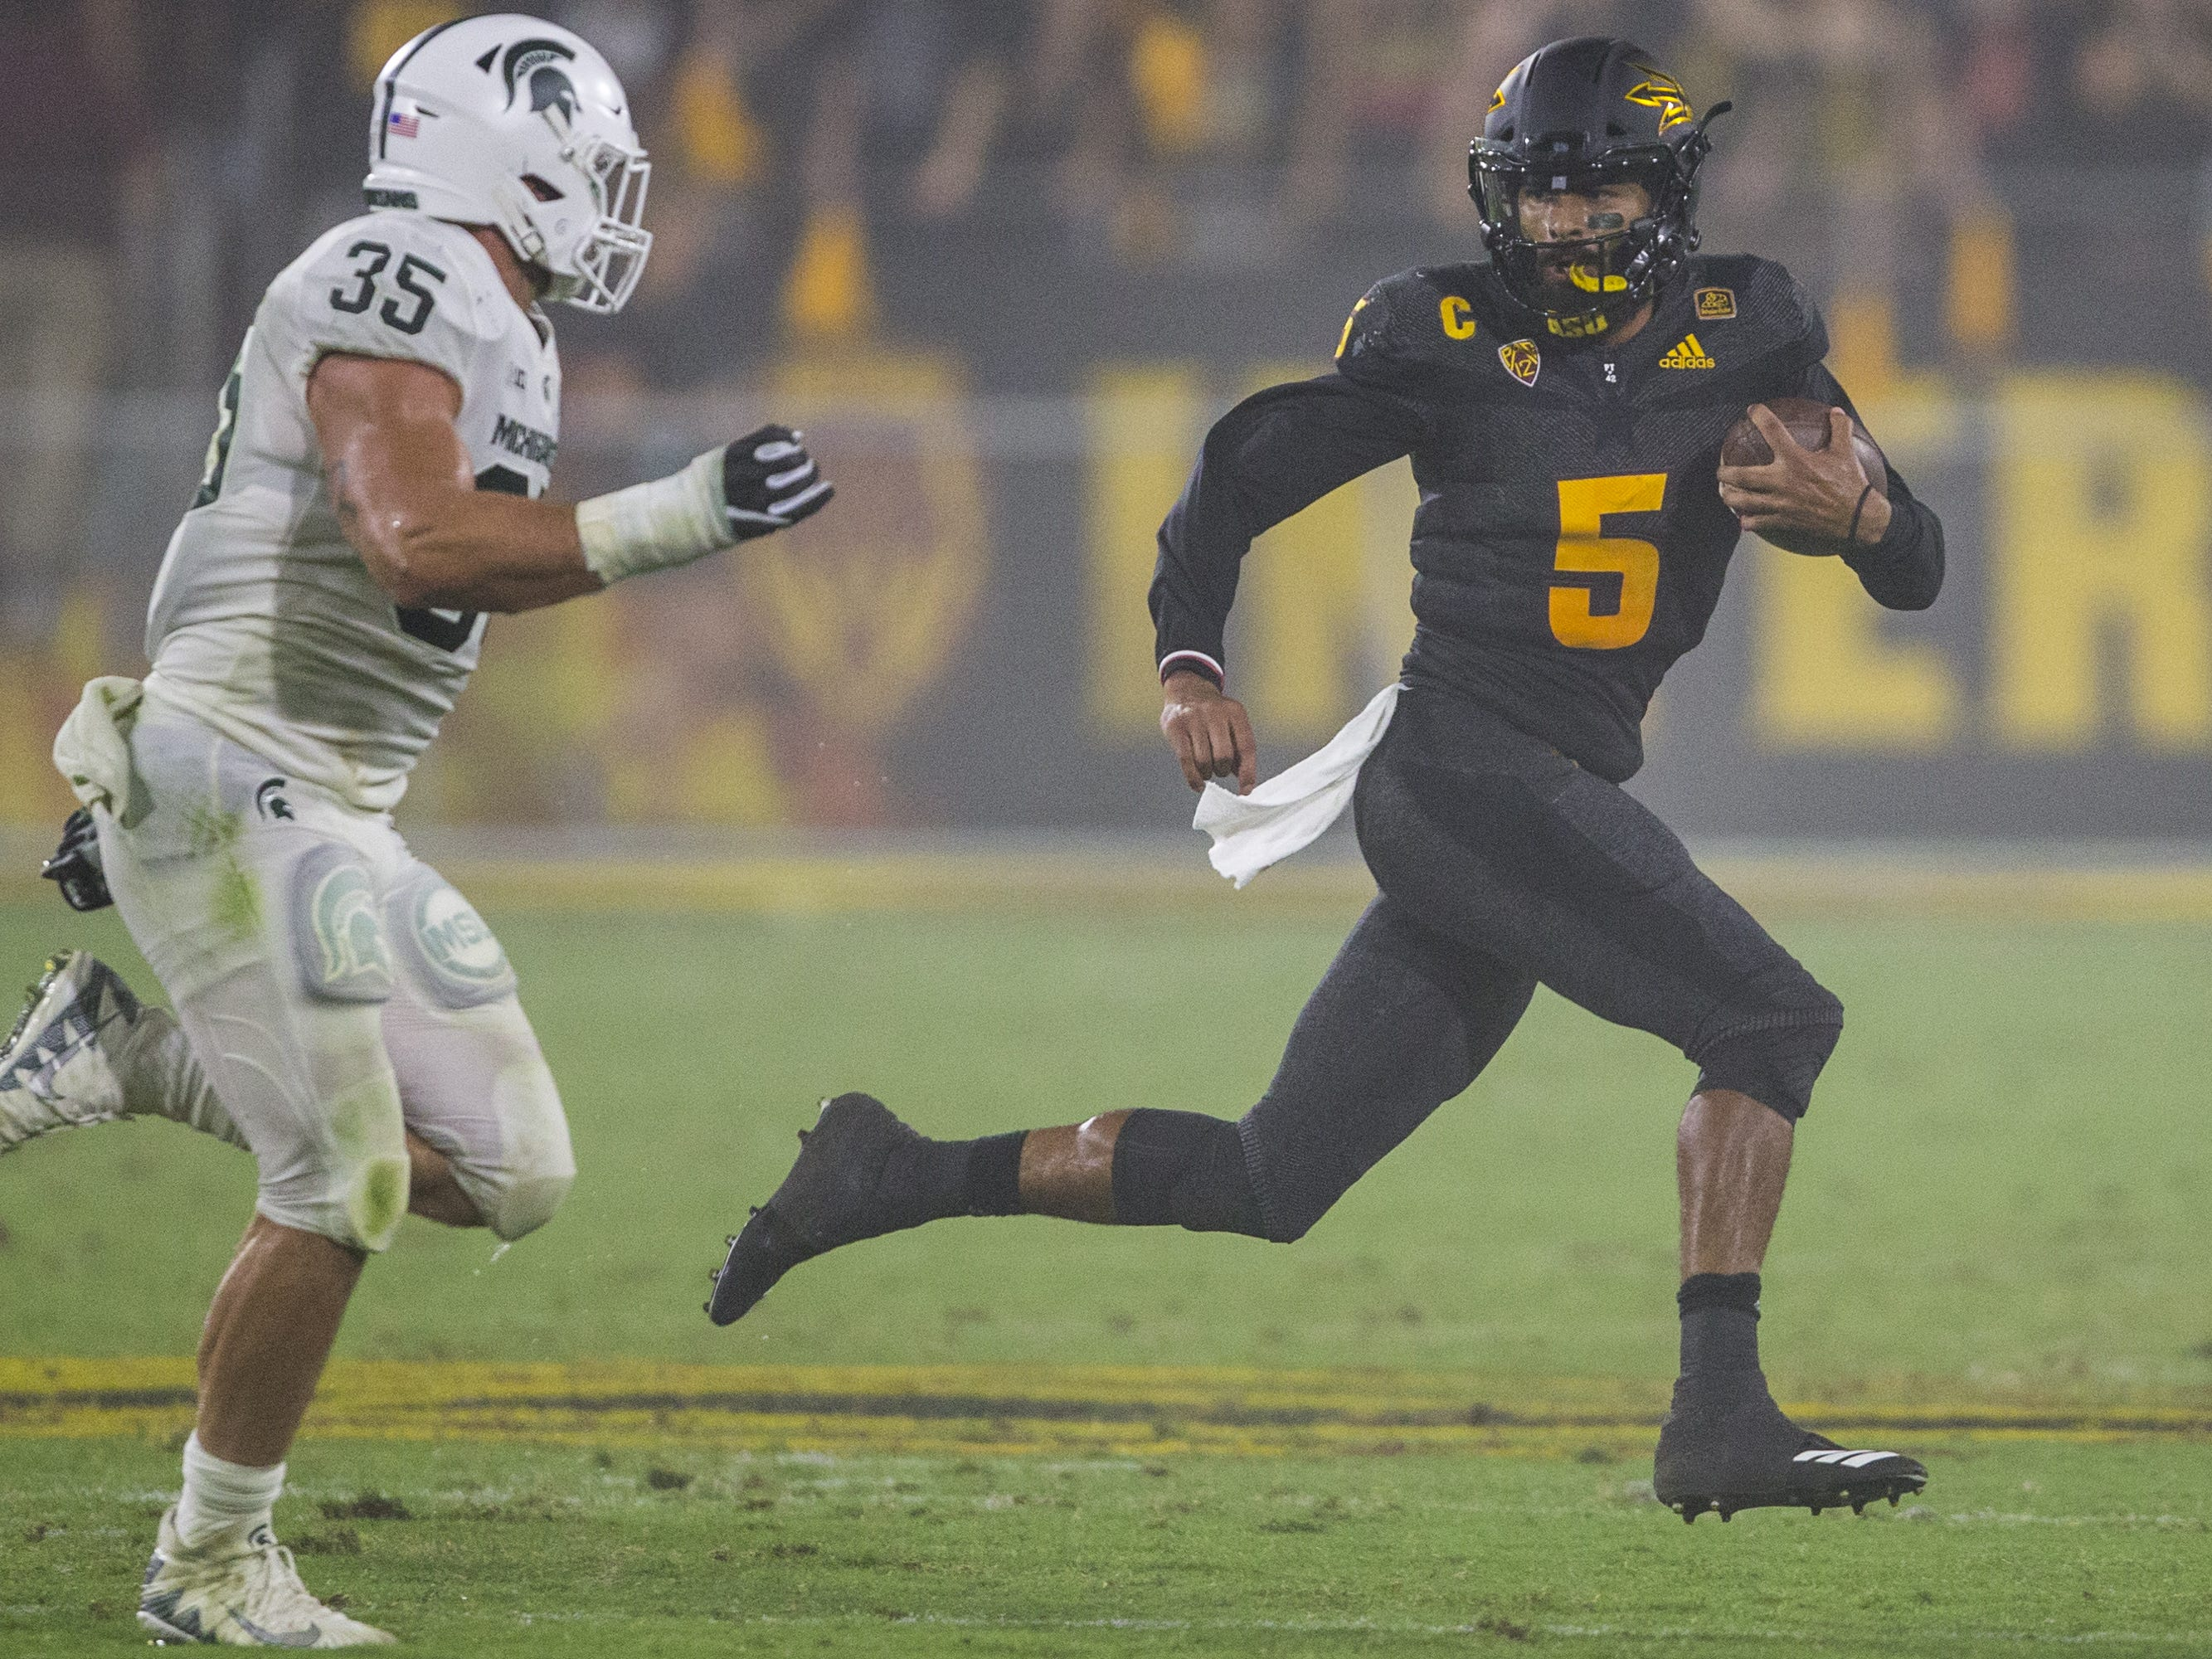 Arizona State's Manny Wilkins rushes against Michigan State in the 2nd quarter on Saturday, Sept. 8, 2018, at Sun Devil Stadium in Tempe, Ariz.